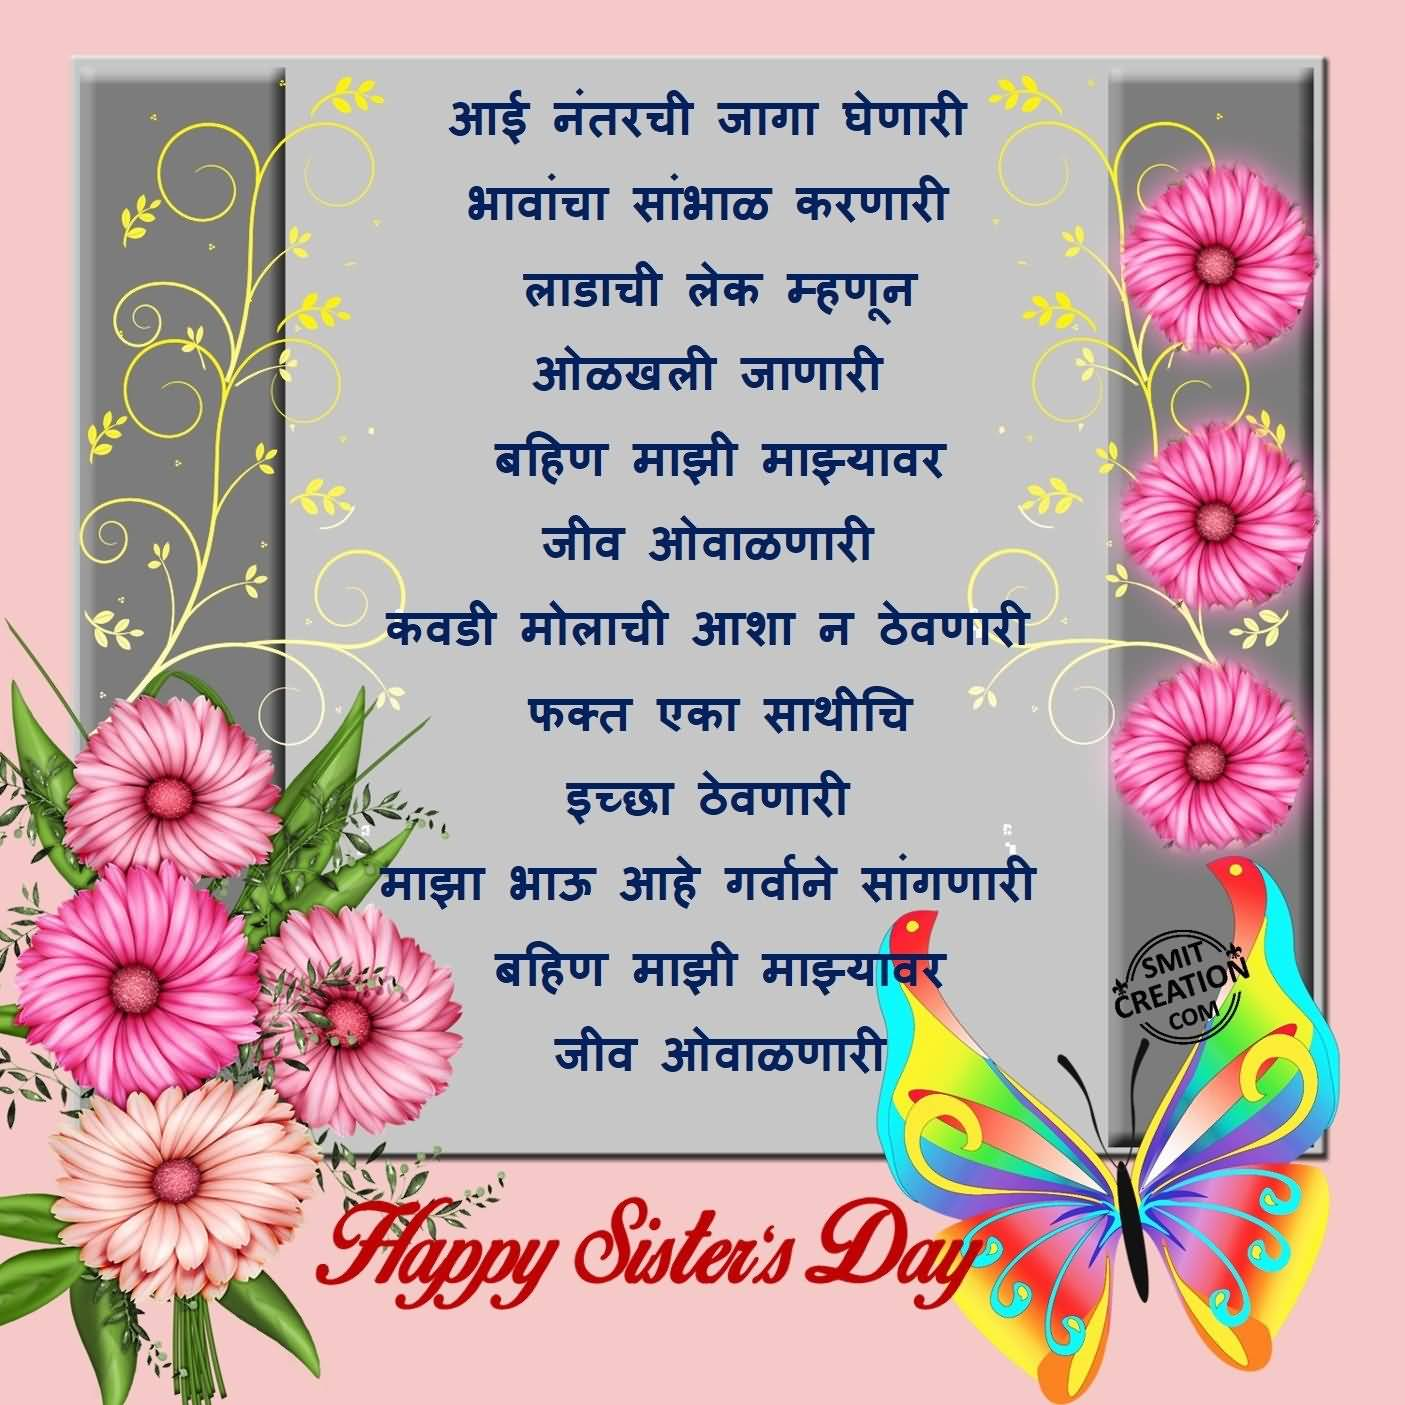 62 happy sisters day 2016 greeting pictures and images happy sisters day wishes in hindi picture kristyandbryce Choice Image